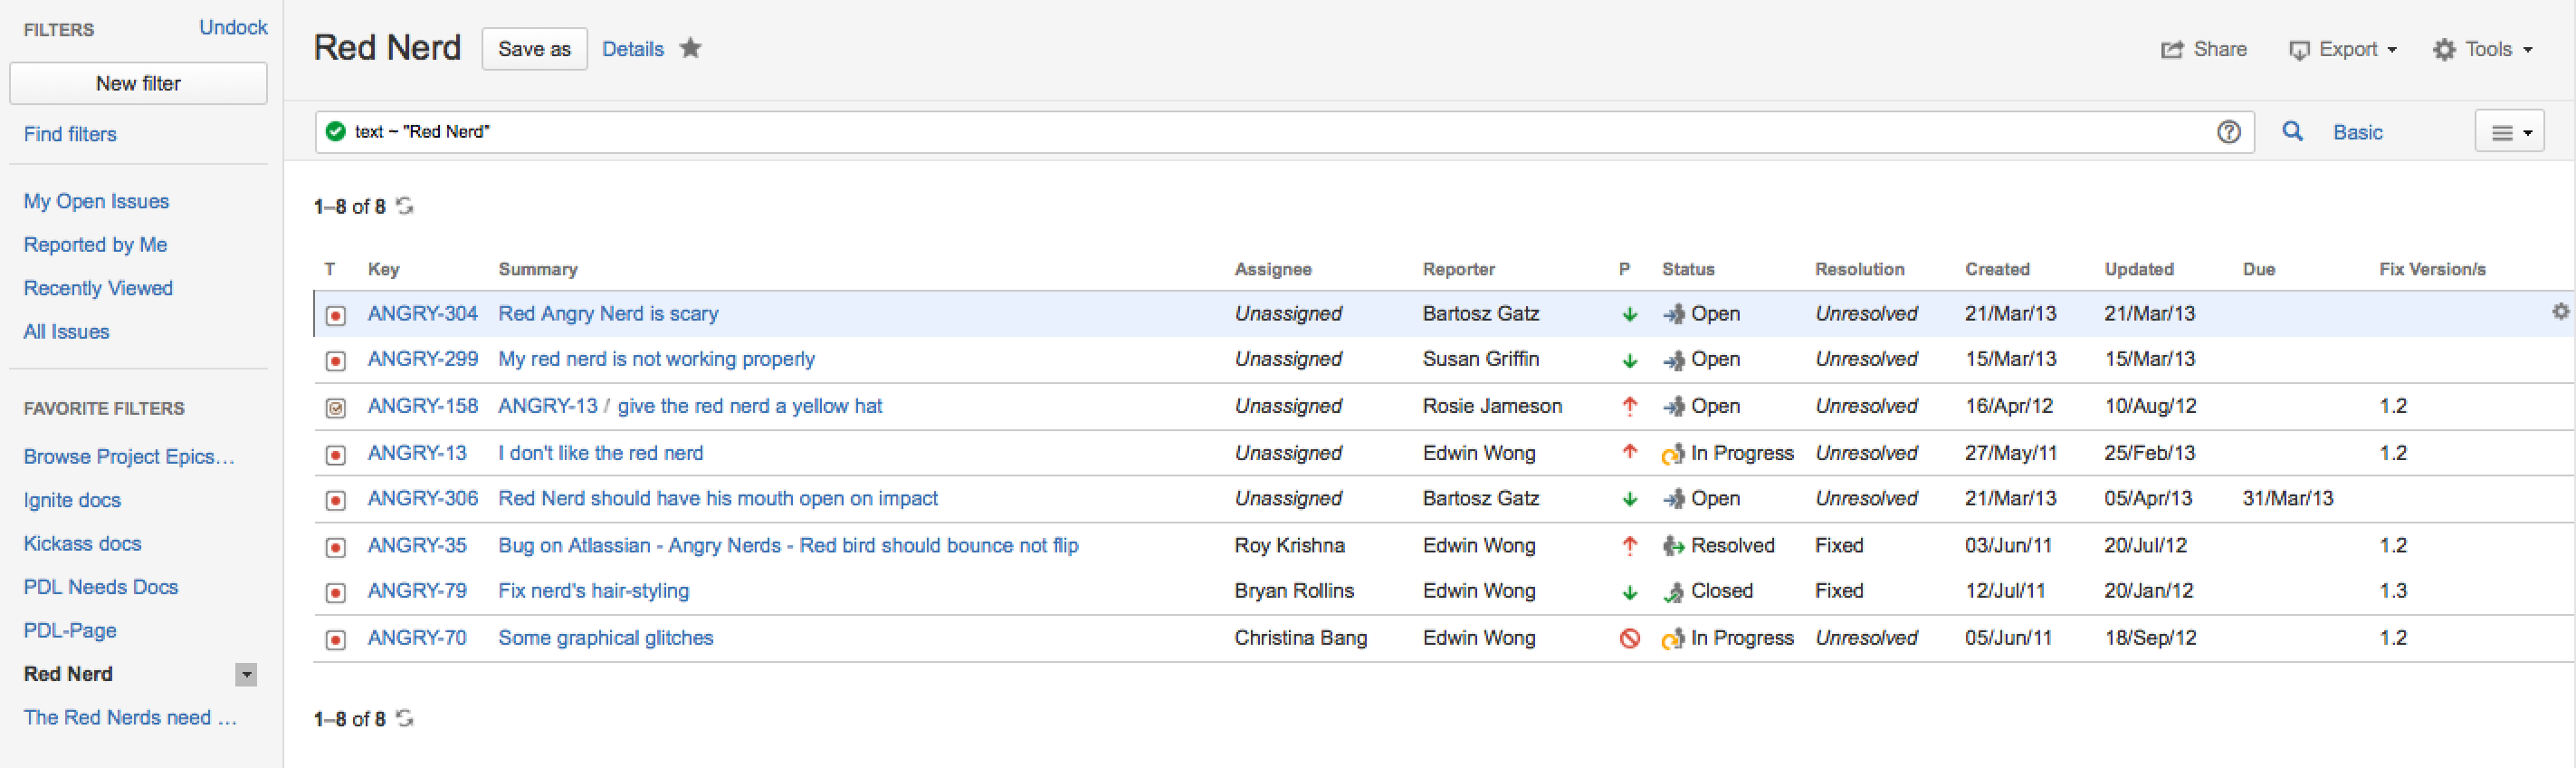 Use Confluence's REST API to search for page content